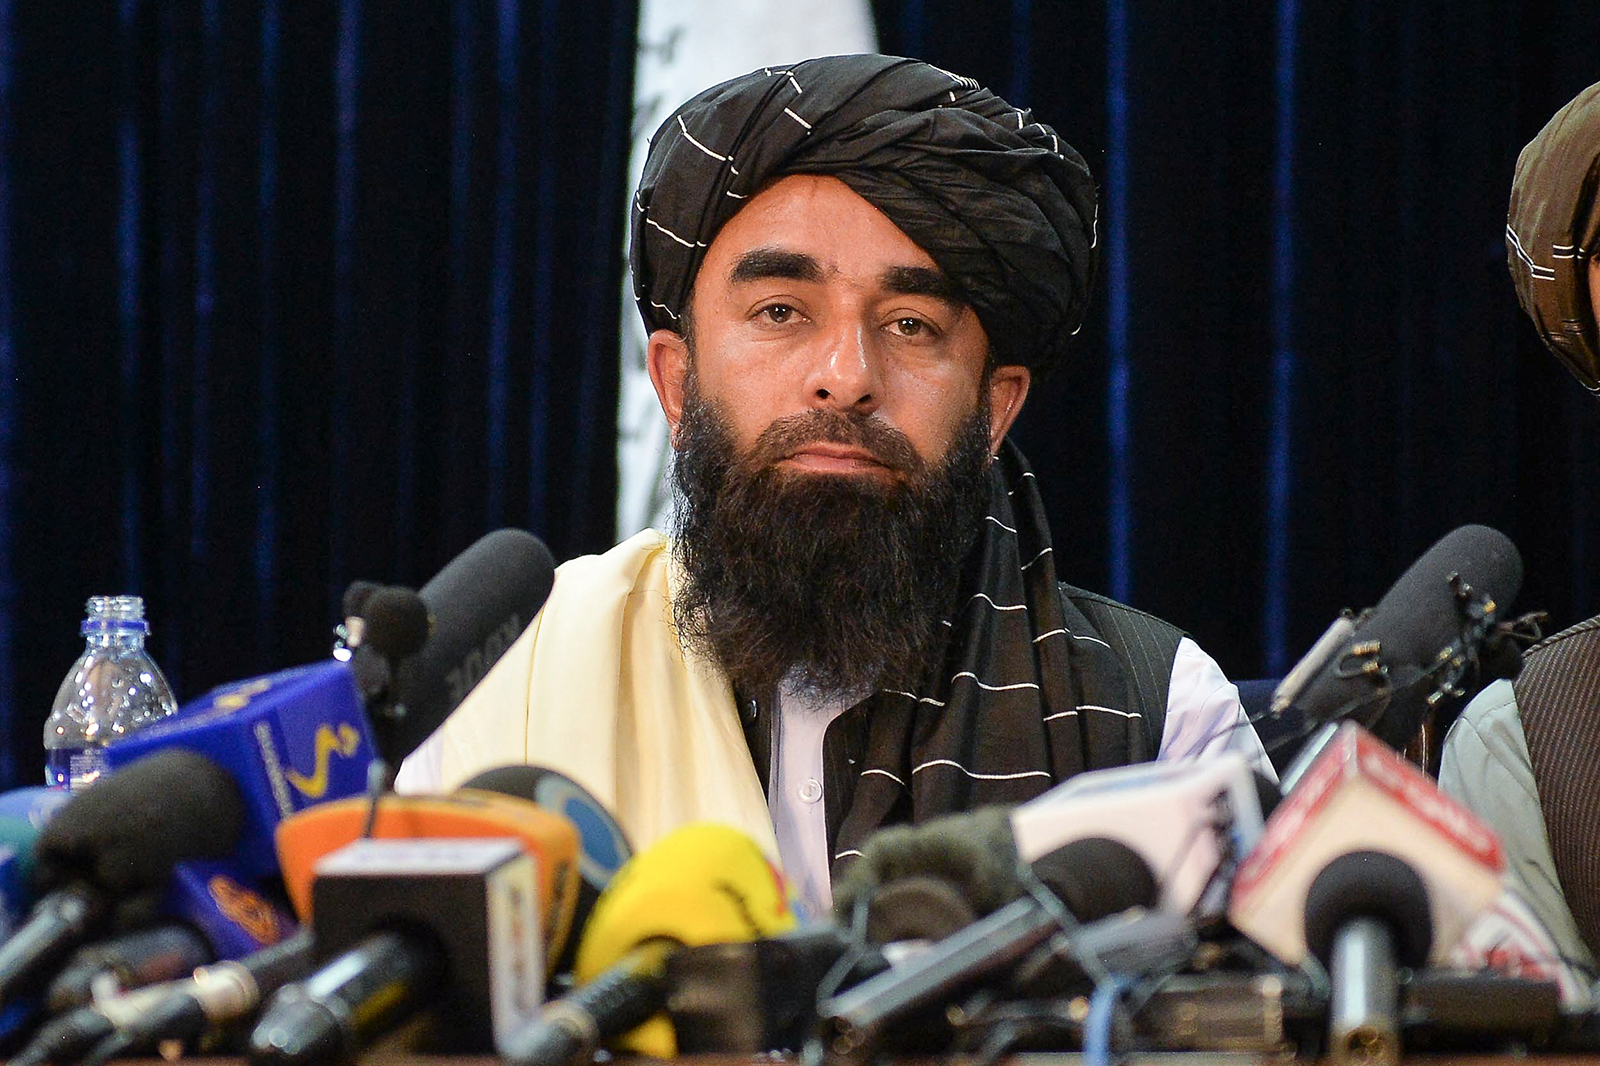 Taliban spokesperson Zabihullah Mujahid looks on as he addresses the first press conference in Kabul on August 17.